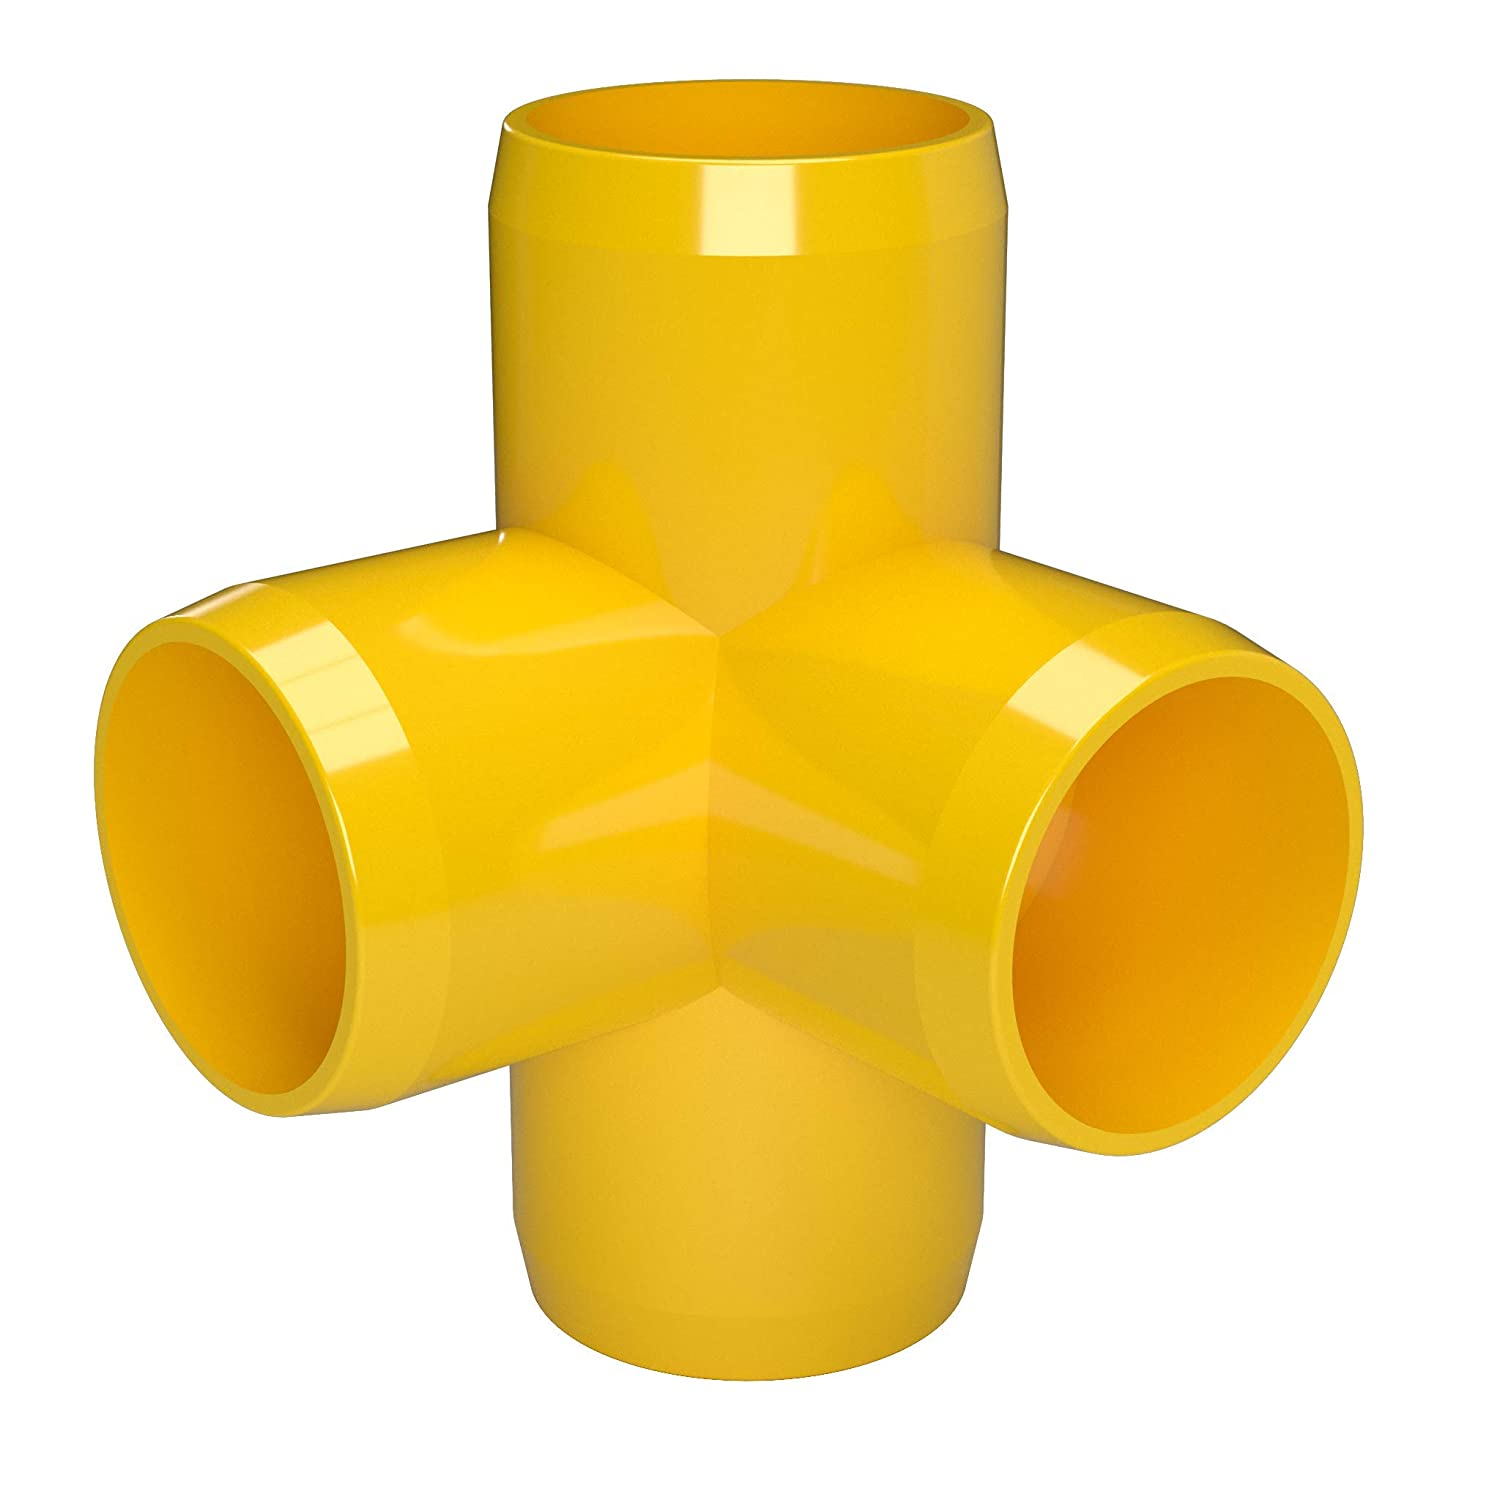 1 Size 1 Size Furniture Grade FORMUFIT F0014WT-YE-4 4-Way Tee PVC Fitting Pack of 4 Yellow